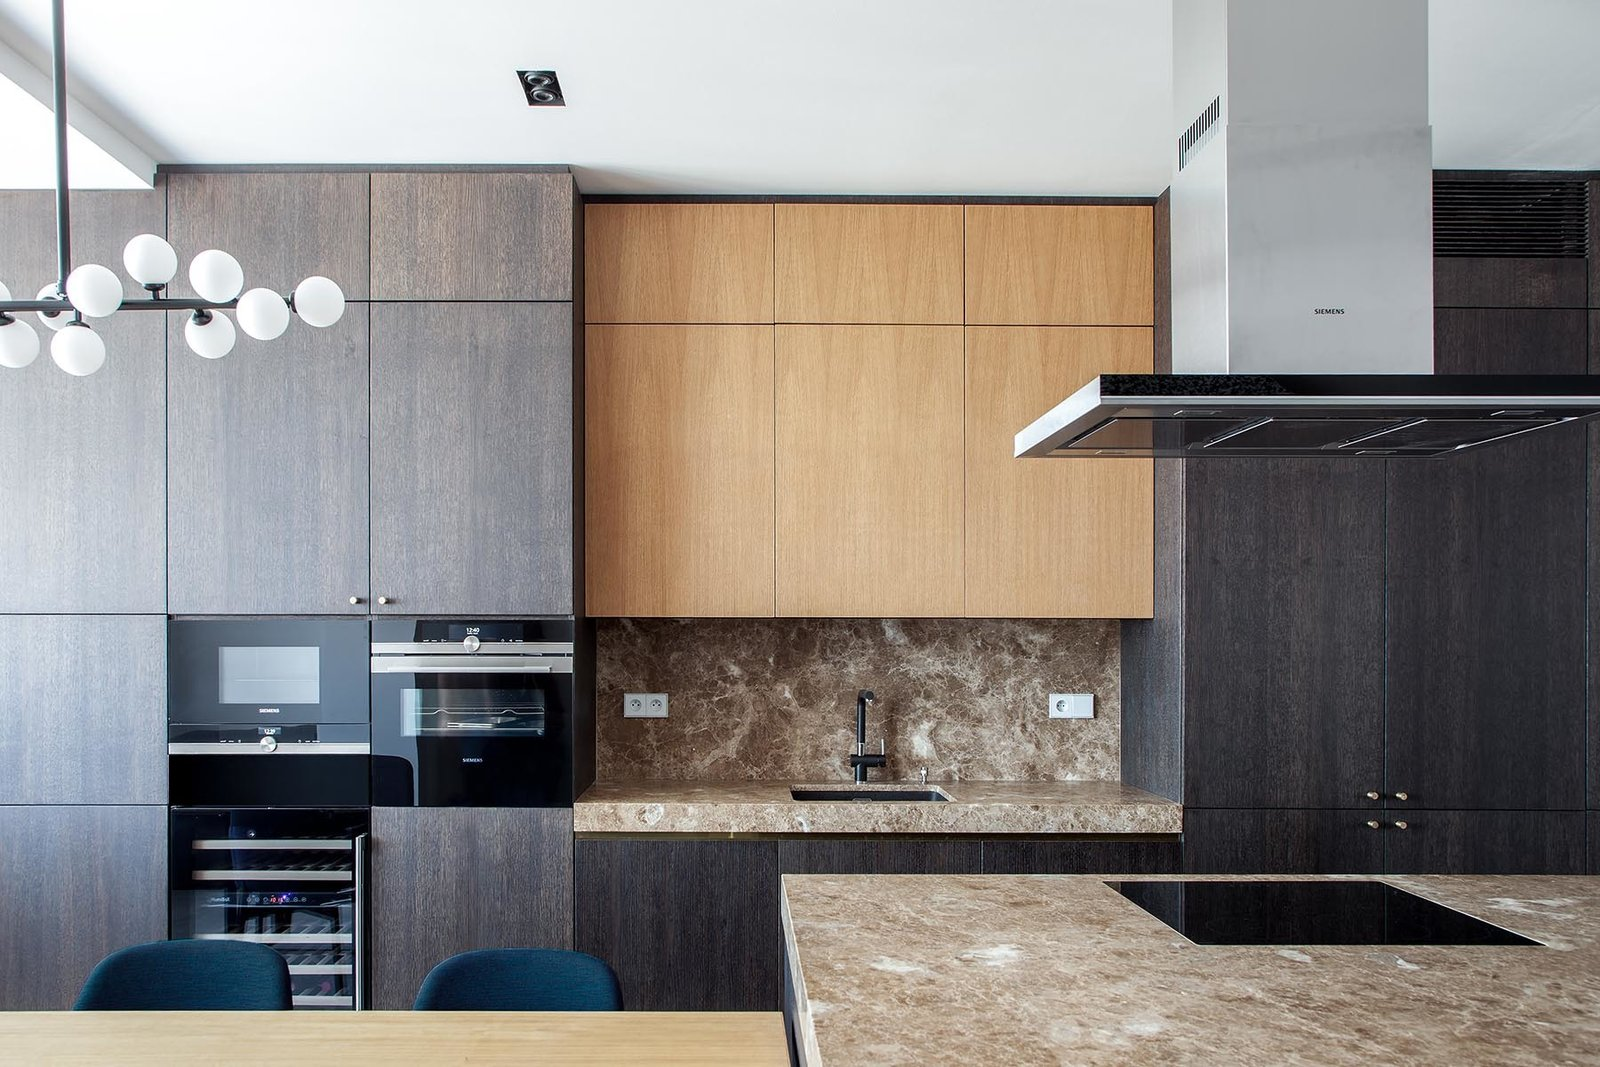 Kitchen, Marble Counter, and Wood Cabinet  Best Photos from Apartment Žitná street  Prague